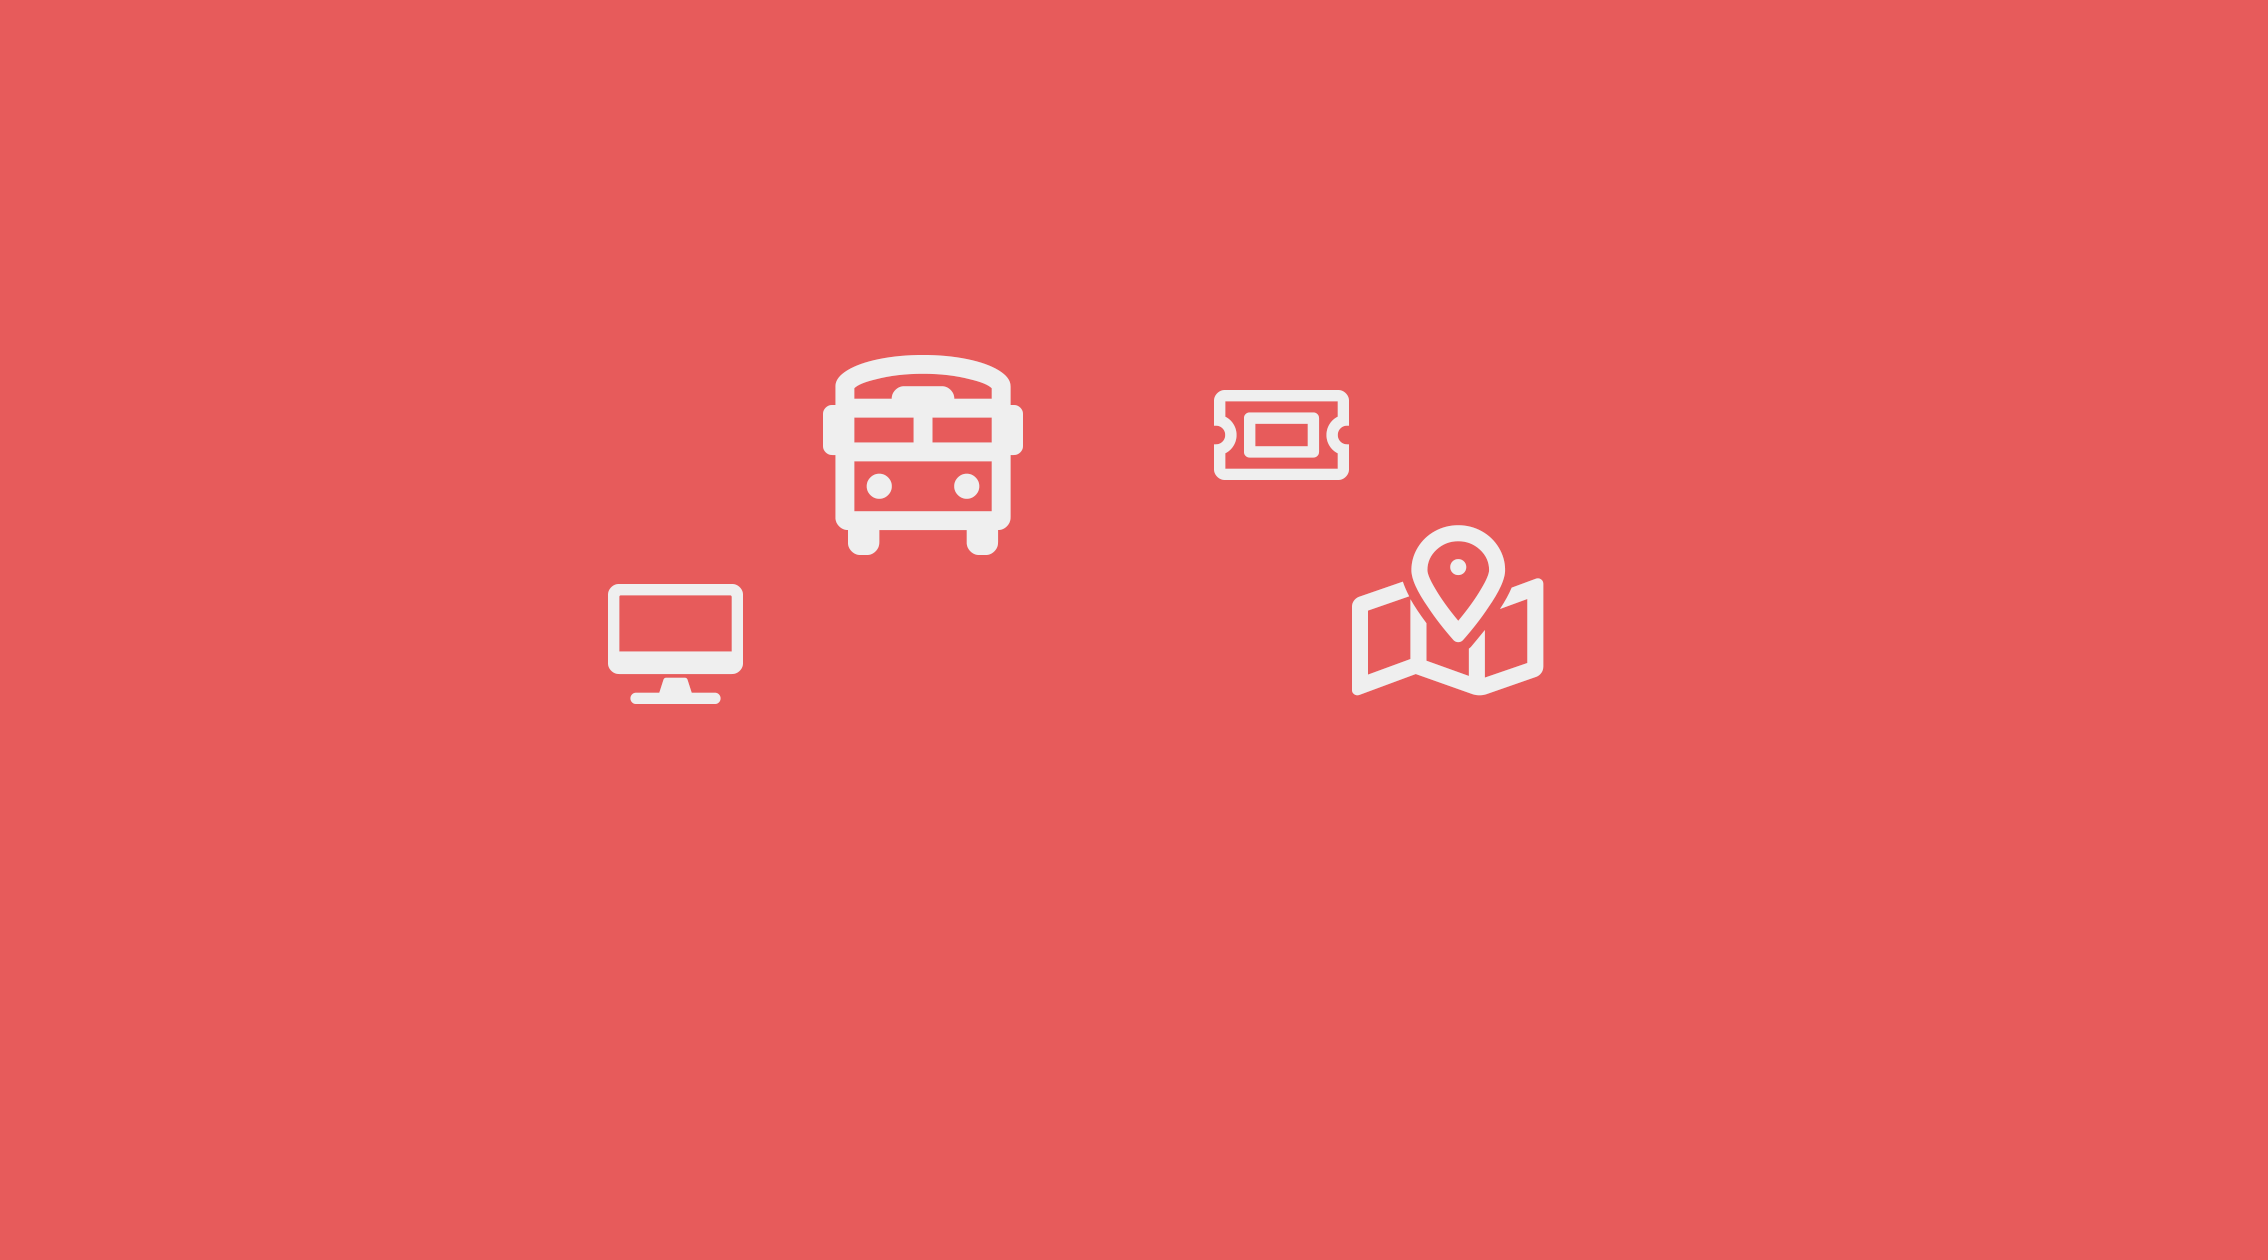 symbols showing public services on a pink background